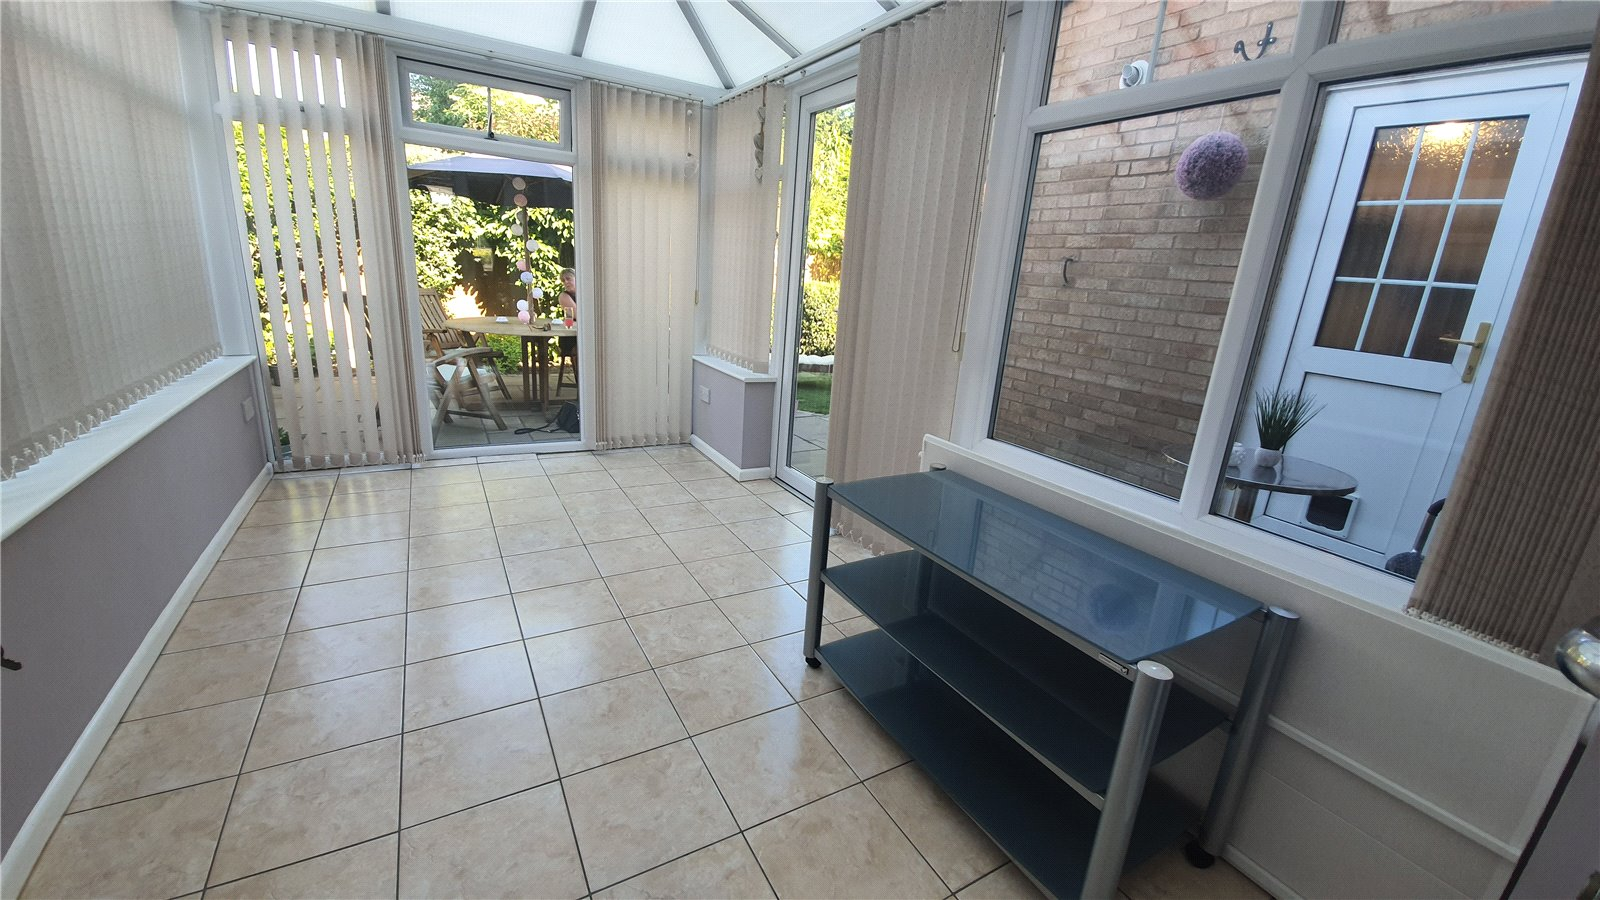 3 bed house for sale in Axis Way, Eaton Socon  - Property Image 3